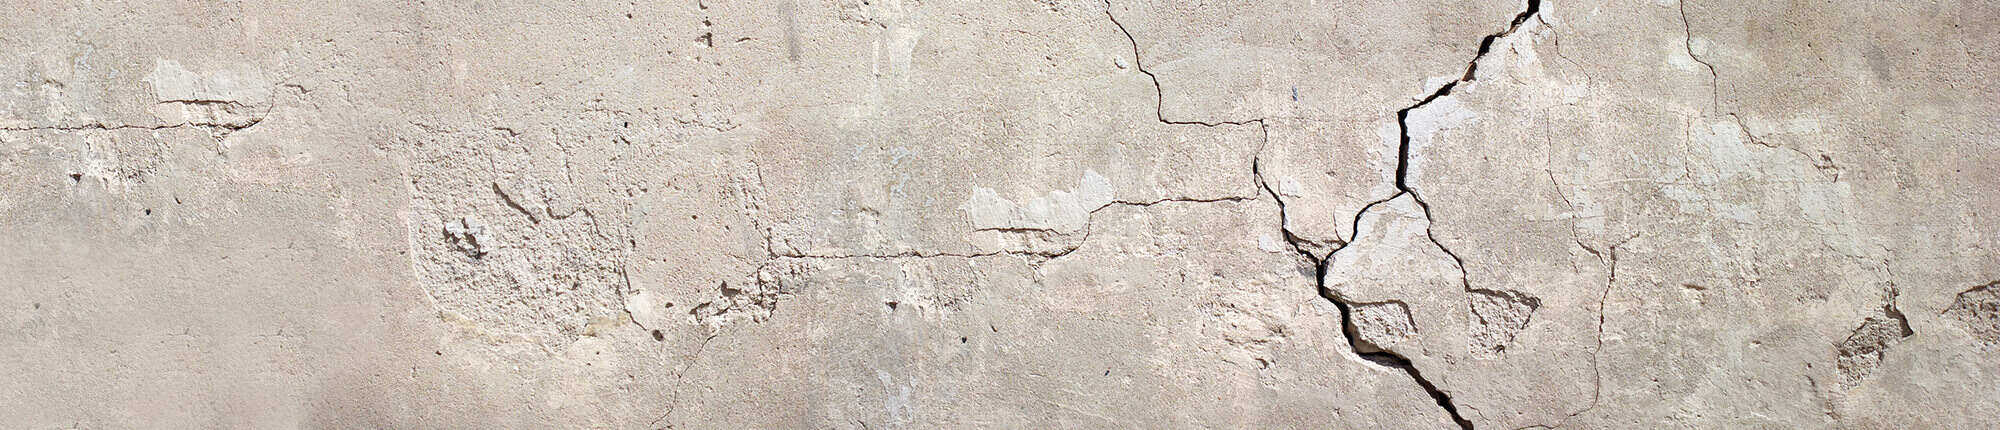 Crack injection services by MudTech keep basement walls and floors waterproof